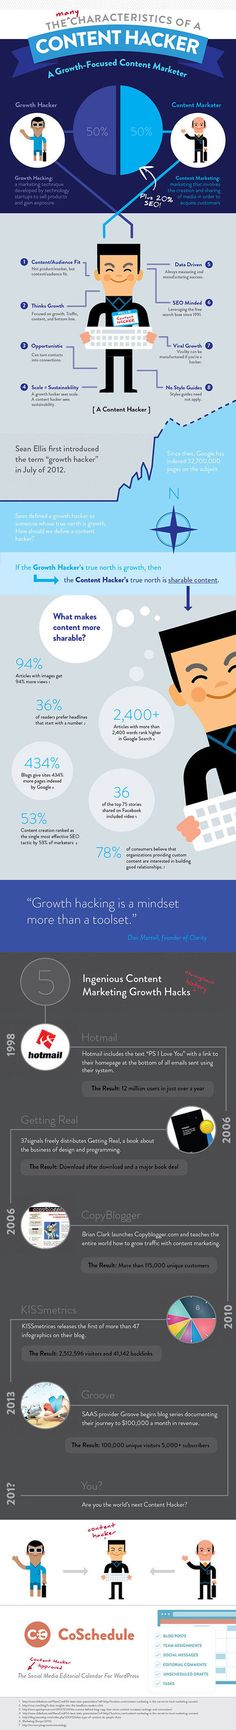 10 Content Marketing Growth Hacks [with Infographic] - Unbounce | #TheMarketingTechAlert